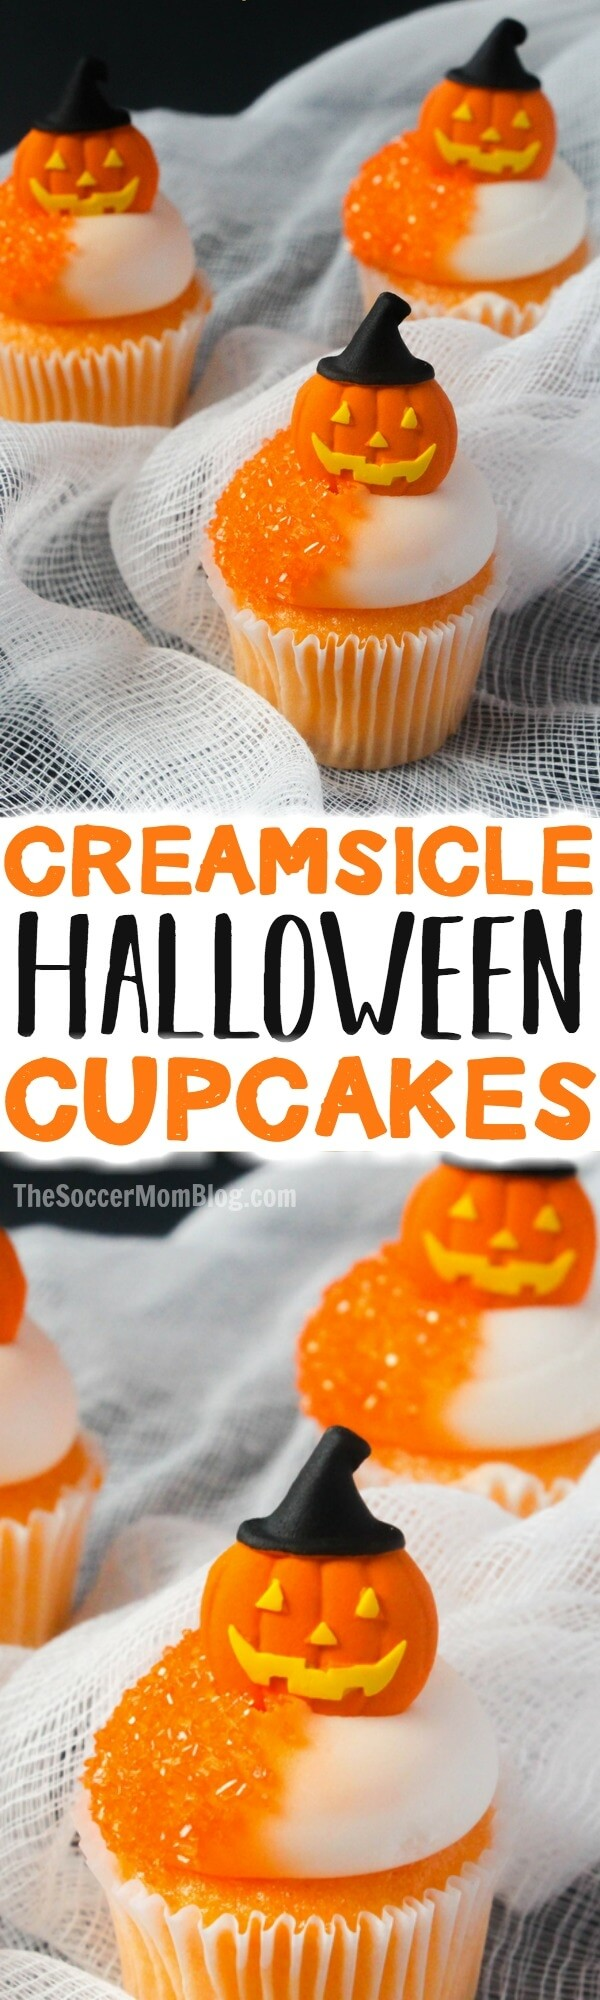 Orange Halloween Cupcakes with Jack-O-Lantern toppers - perfect for Halloween parties! Creamsicle flavored